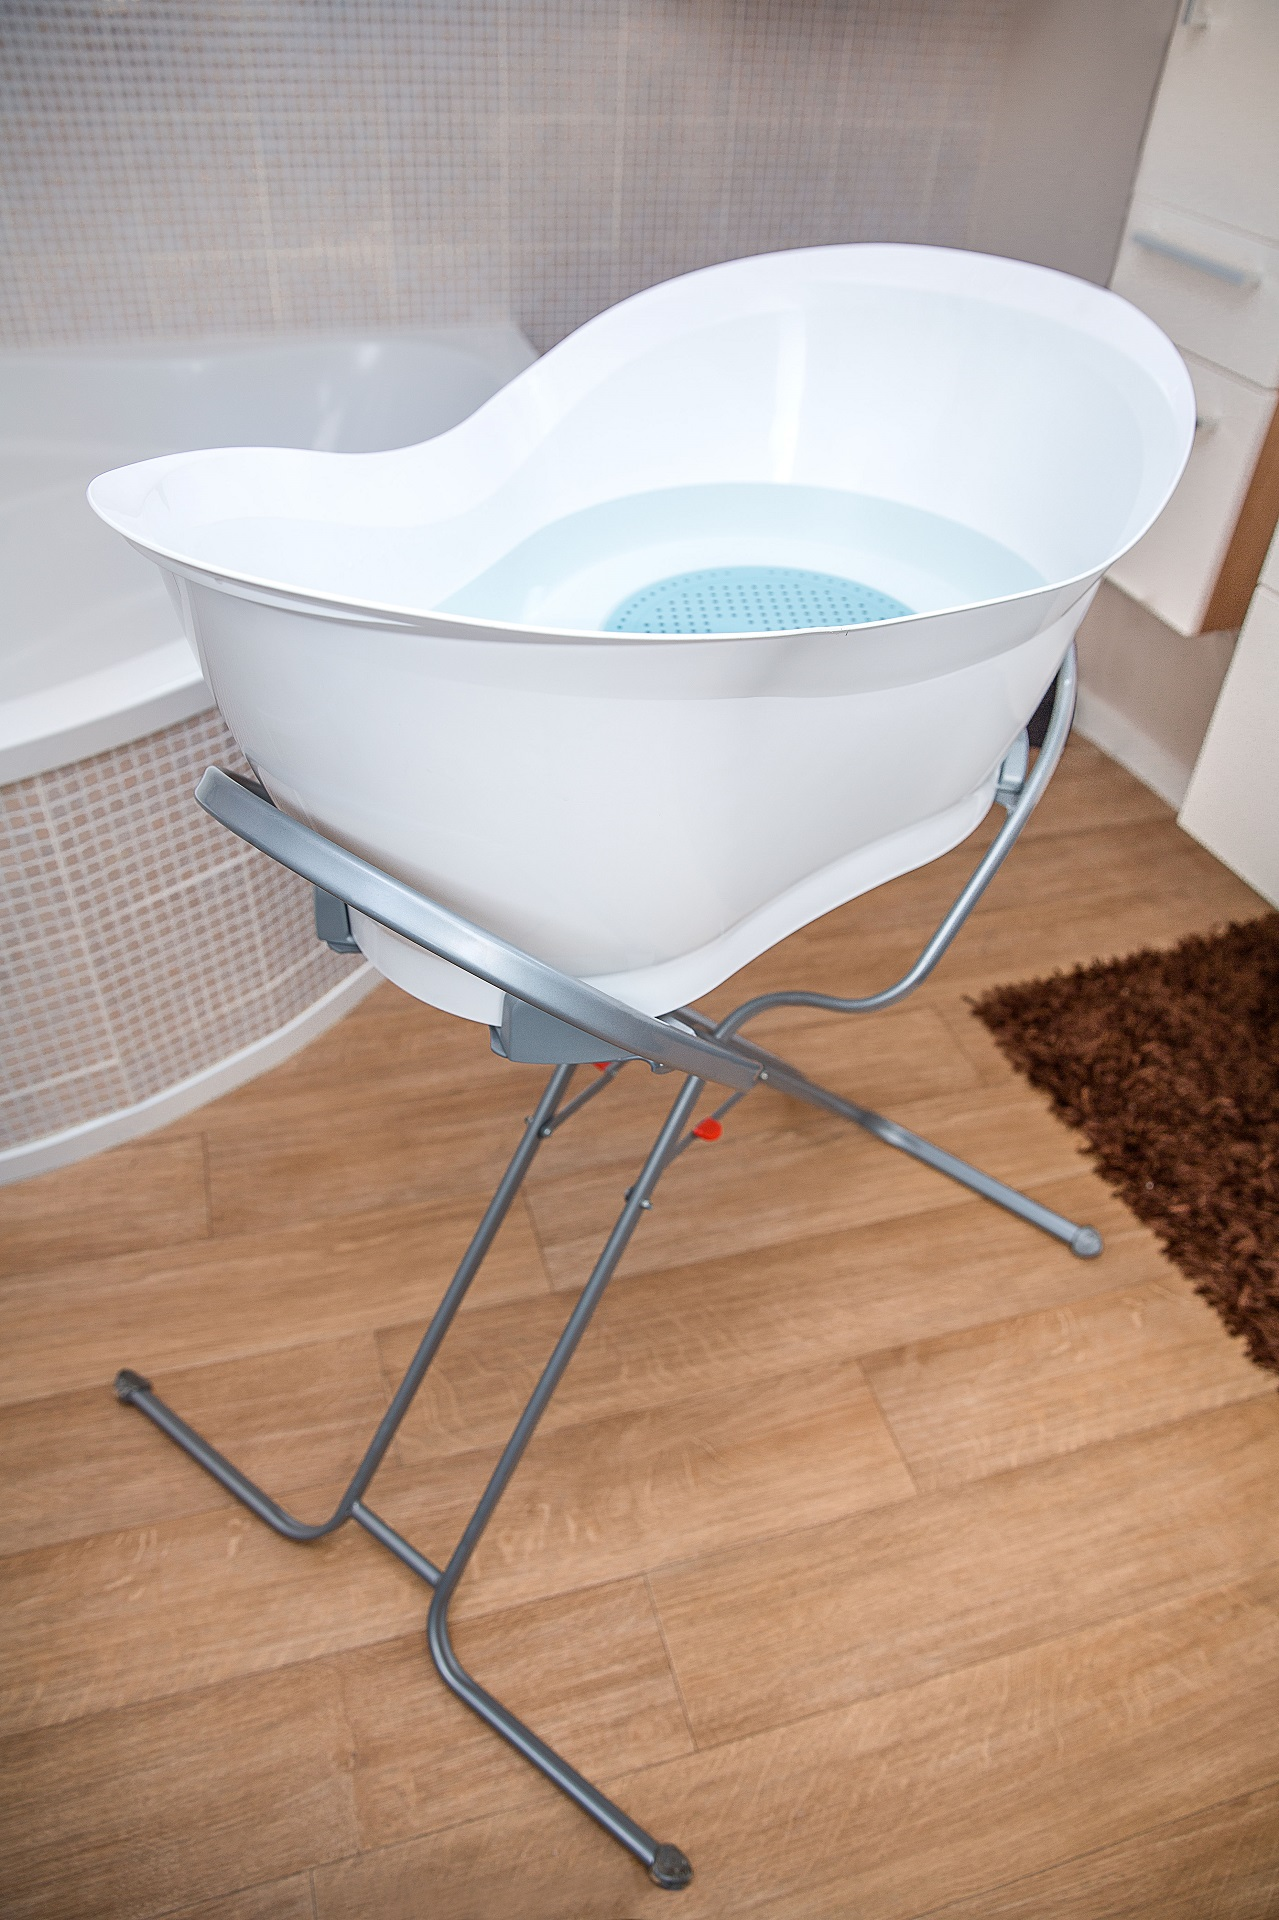 Babymoov Aquanest Baby Bathtub - Buy at kidsroom | Baby care